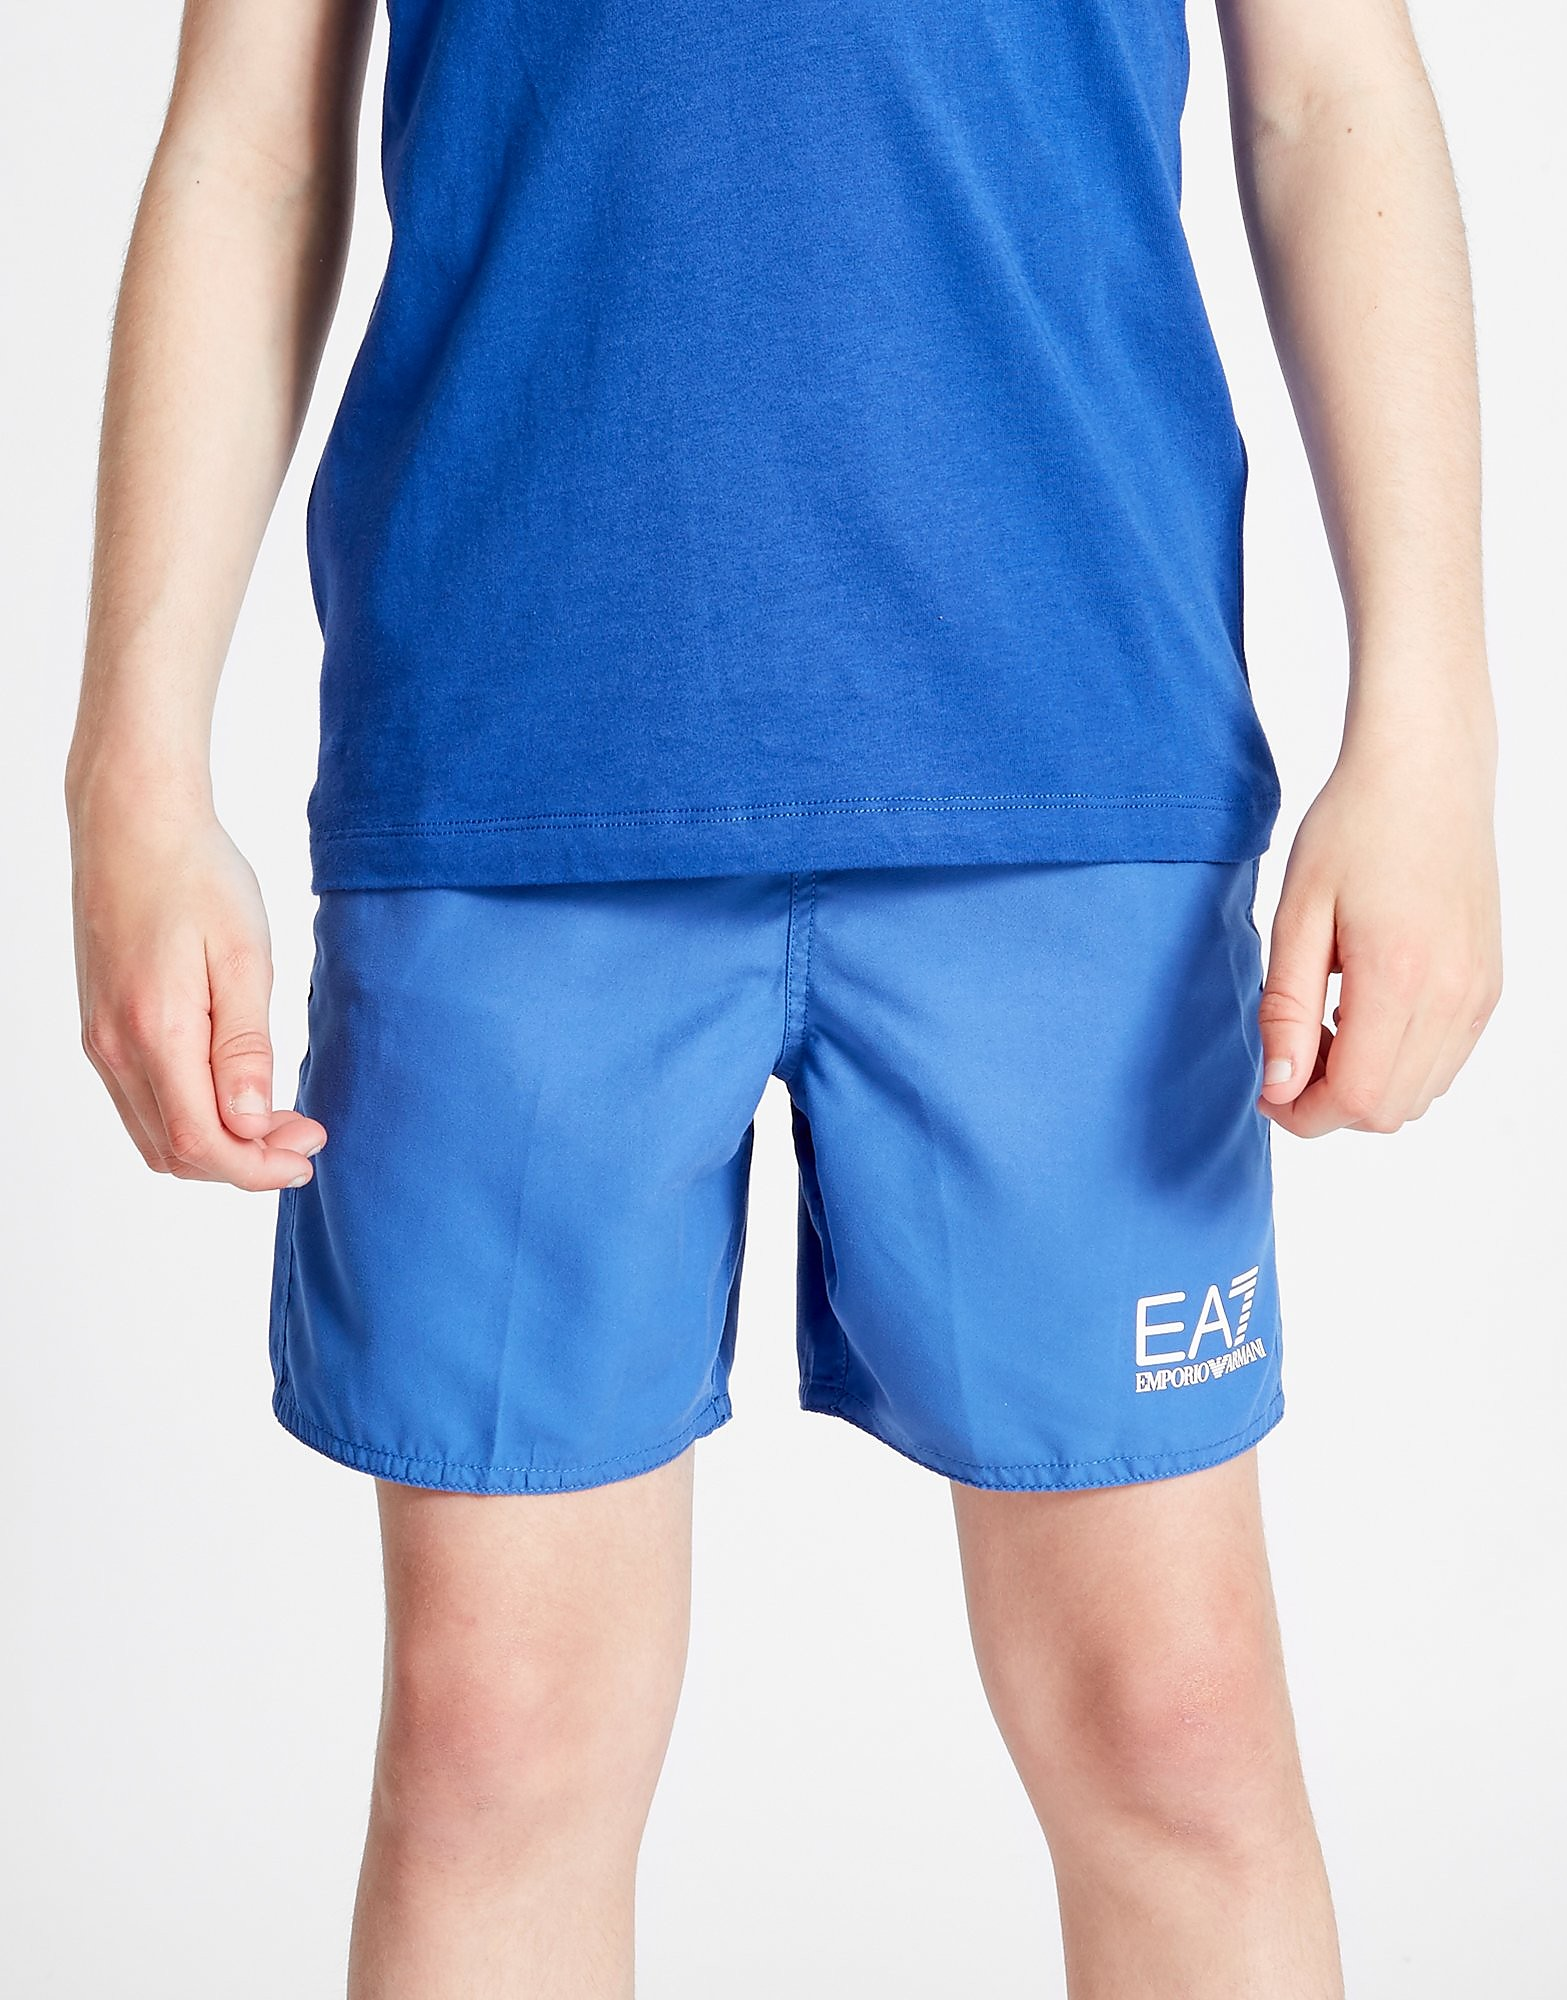 Emporio Armani EA7 Core Swim Shorts Junior - Blauw - Kind